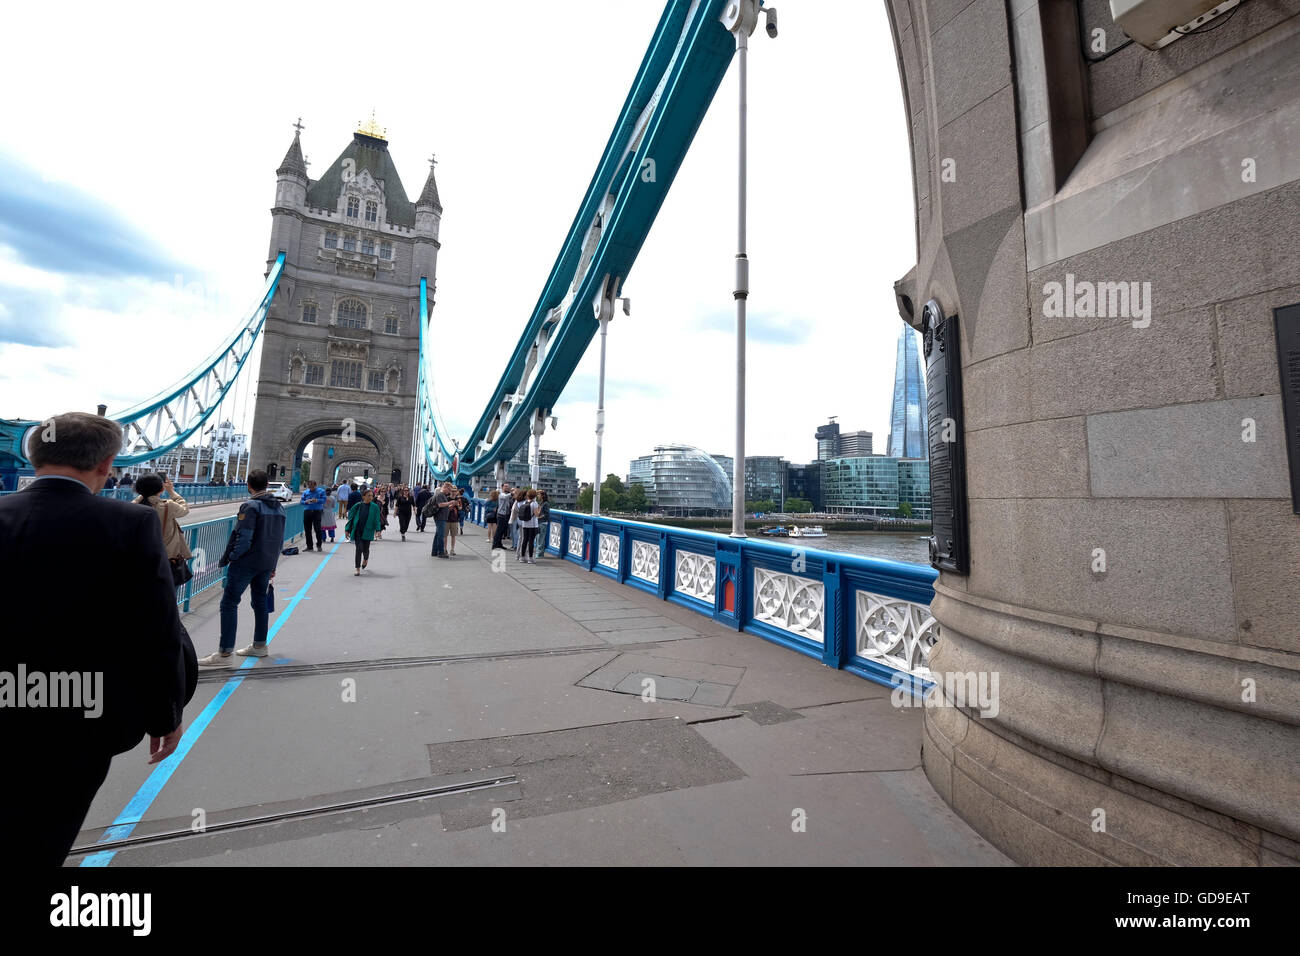 Pedestrians passing under a tower on London Bridge with the other tower in the background - Stock Image